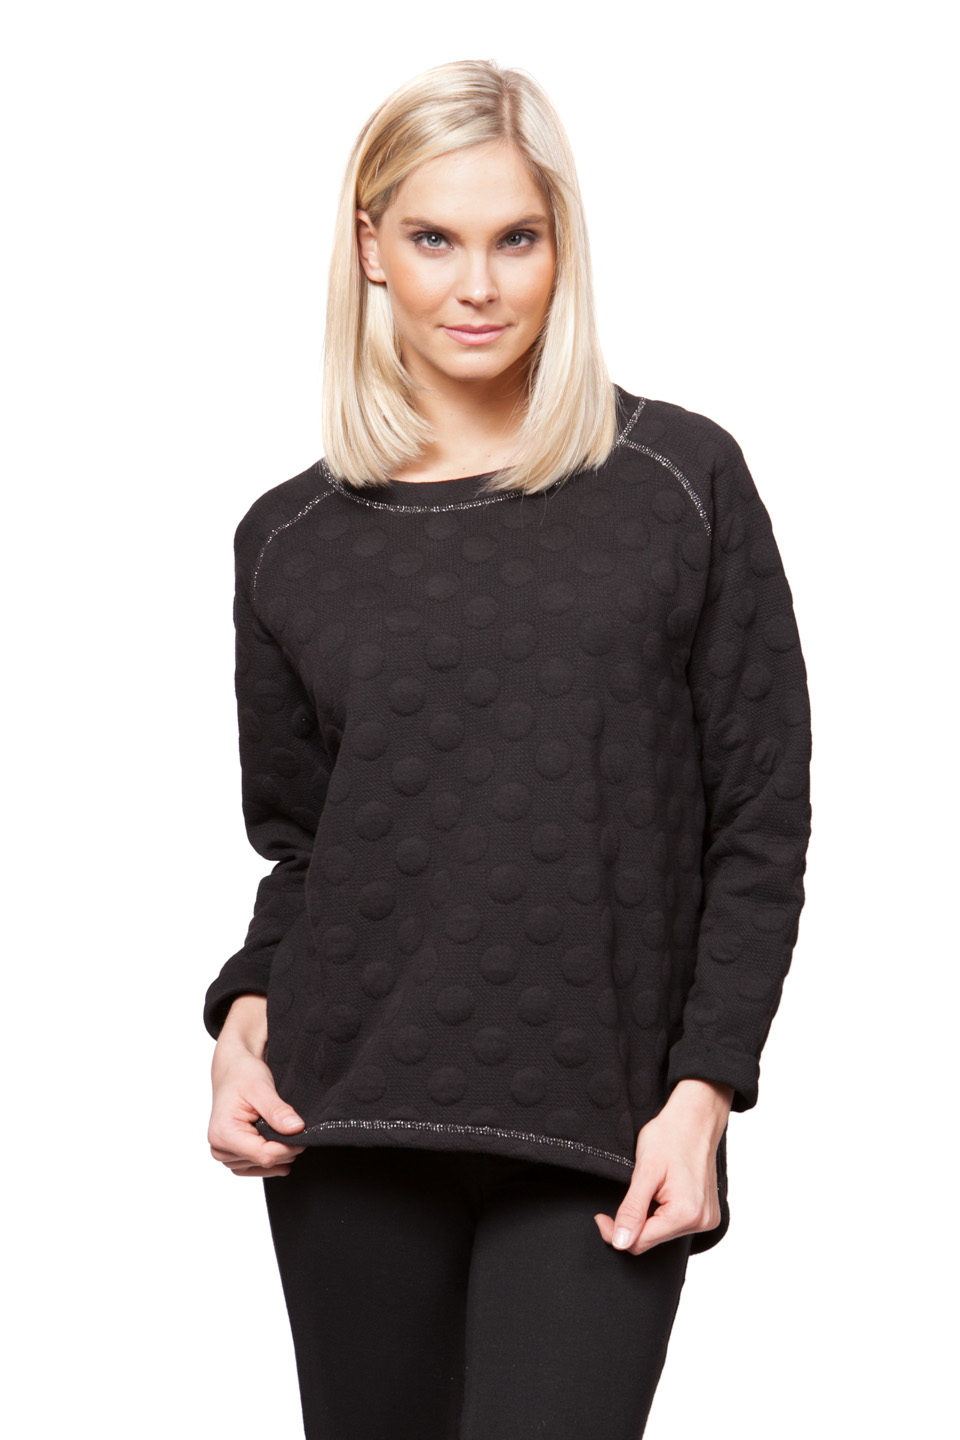 Copy of Style # 40273-16, p. 14<br>Bubble Dot Blister Sweatshirt<br>Color: Black, 2 colors